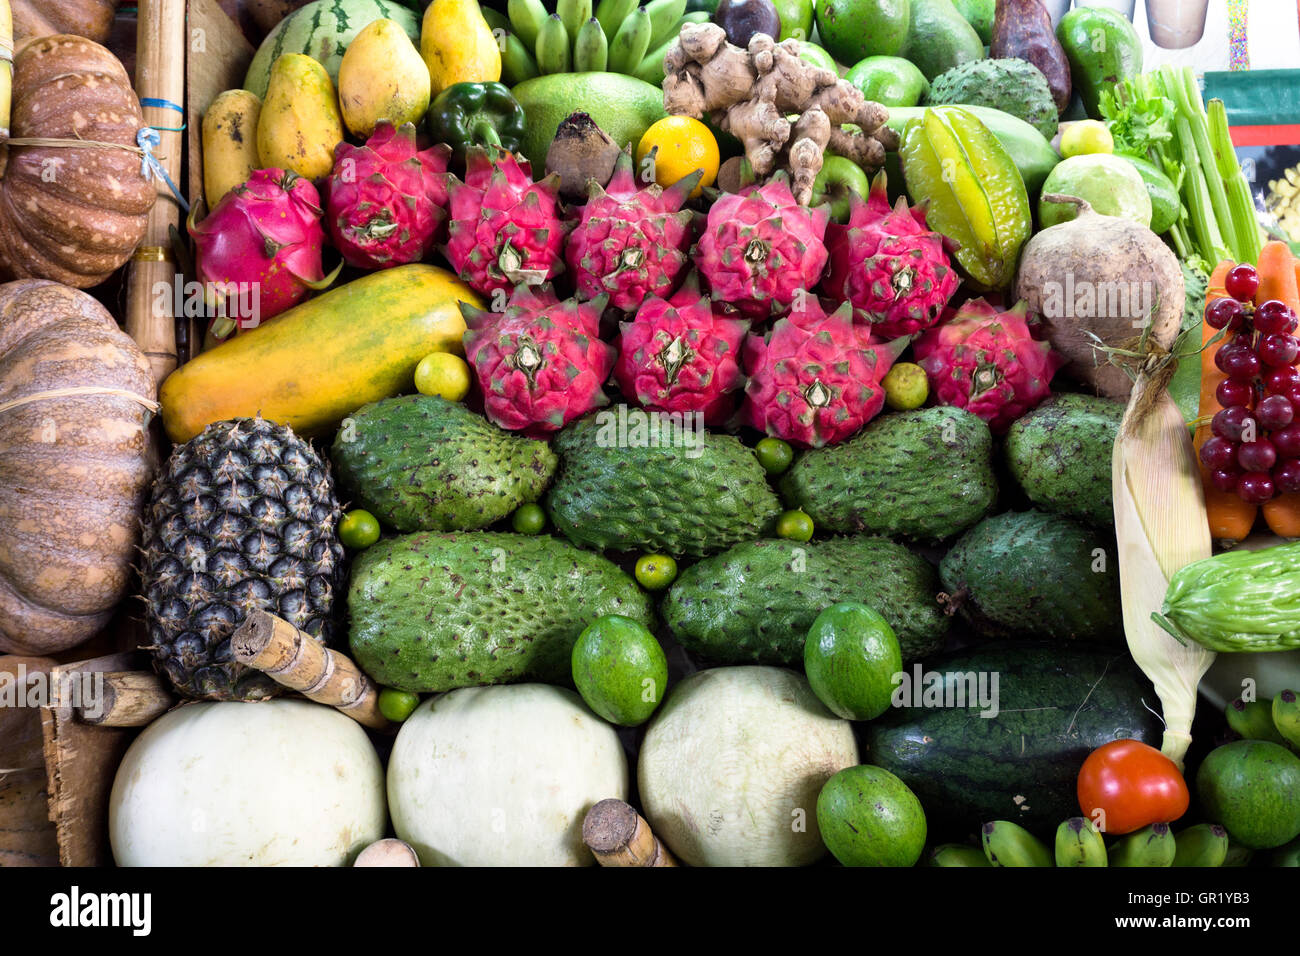 Variety of fruits at the local stall in Kota Kinabalu, Sabah Borneo, Malaysia. - Stock Image